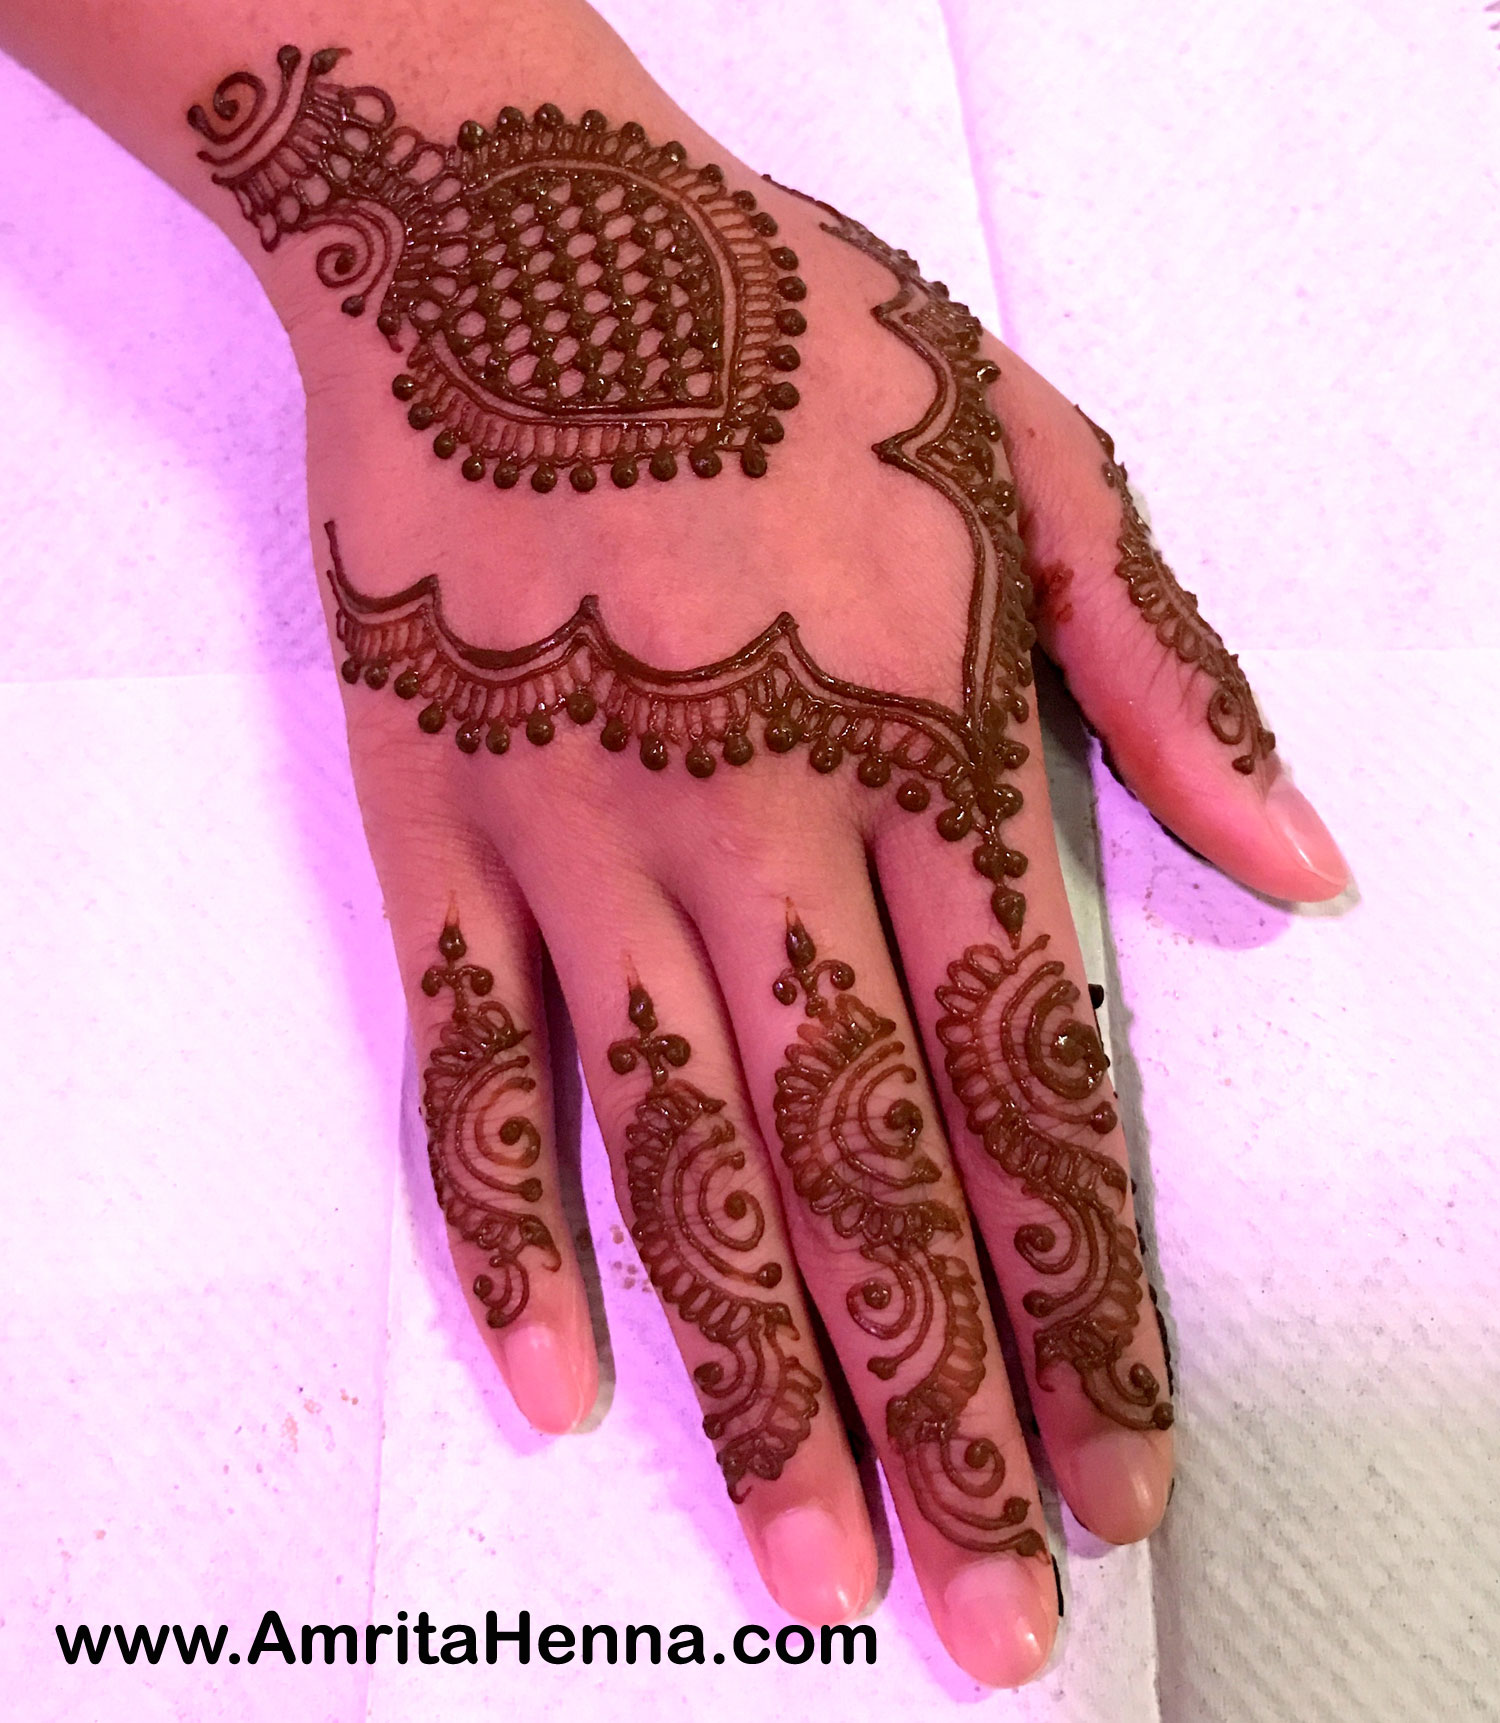 Top 10 Grid Pattern Henna Designs - 10 Best Checks Pattern Mehndi Designs - 10 Stunning Mehendi Designs in Grid Pattern - 10 Most Stylish Mehendi Grid Designs for your Engagement Ceremony - 10 Must Try Most Popular Grid Pattern Henna Designs for Weddings - Top 10 Beautiful Checks Henna Designs for Henna Parties - Top 10 Amazing Grid Checks Pattern Mehandi Designs for Karwachauth